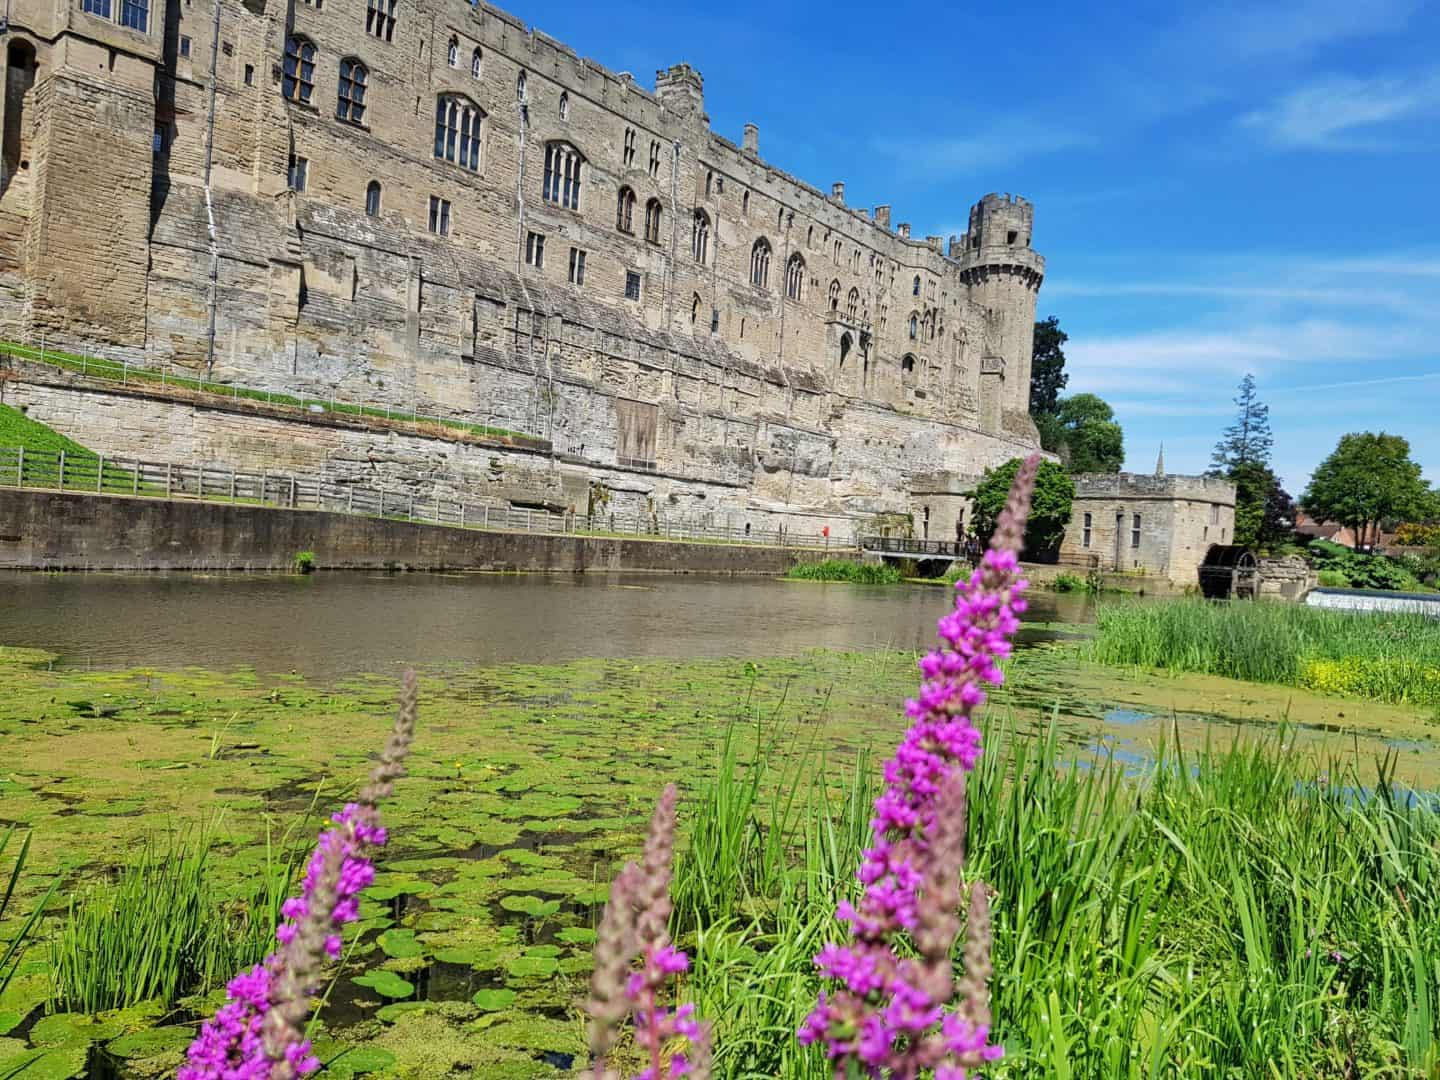 Warwick castle viewed across the moat with flowers in foreground